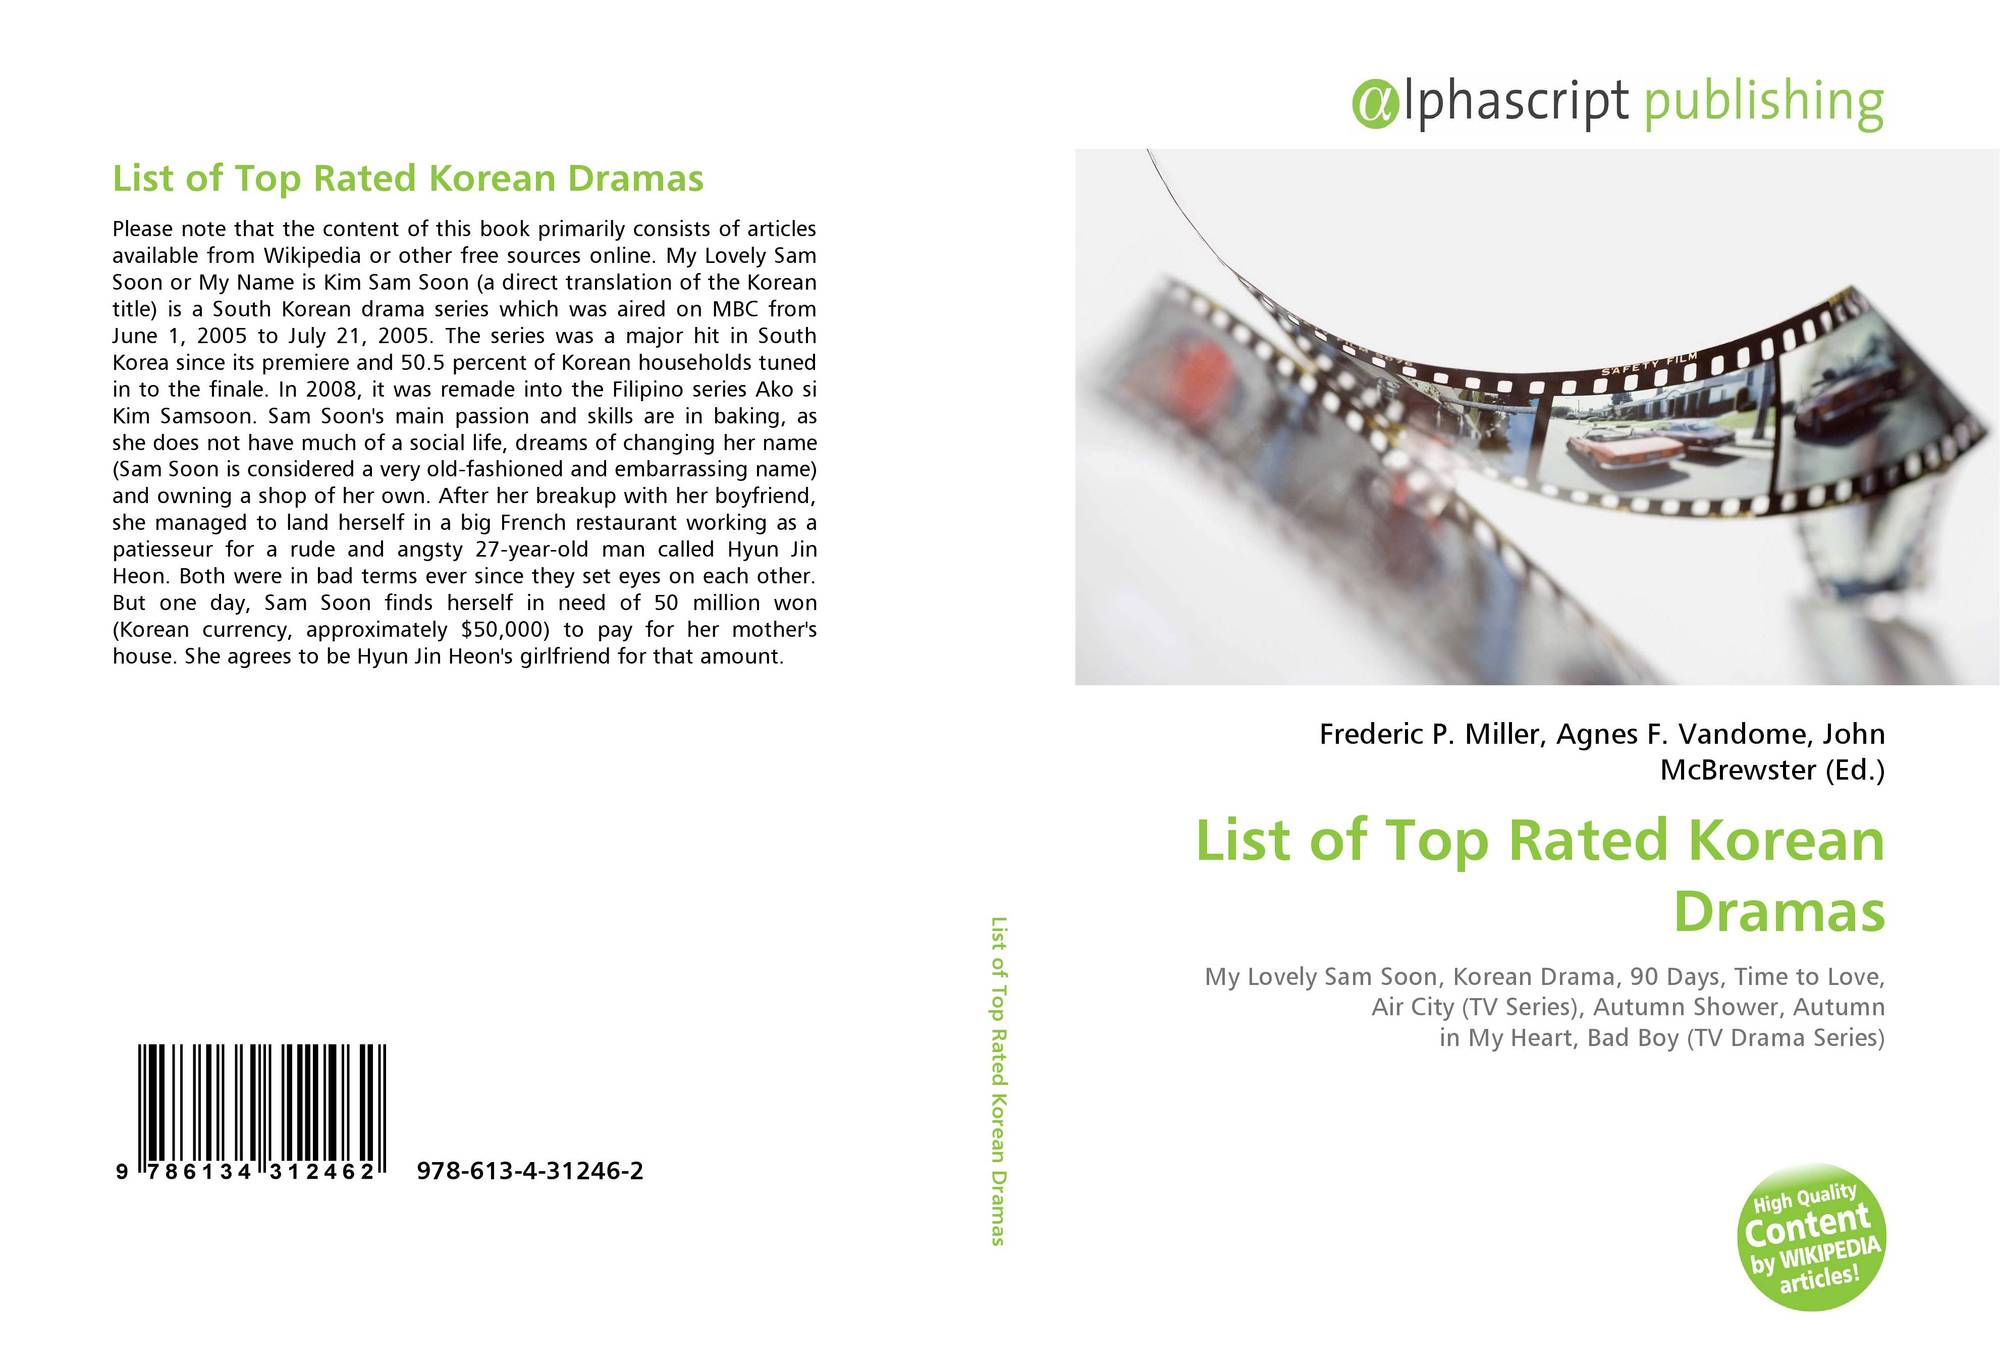 List of Top Rated Korean Dramas, 978-613-4-31246-2, 6134312460